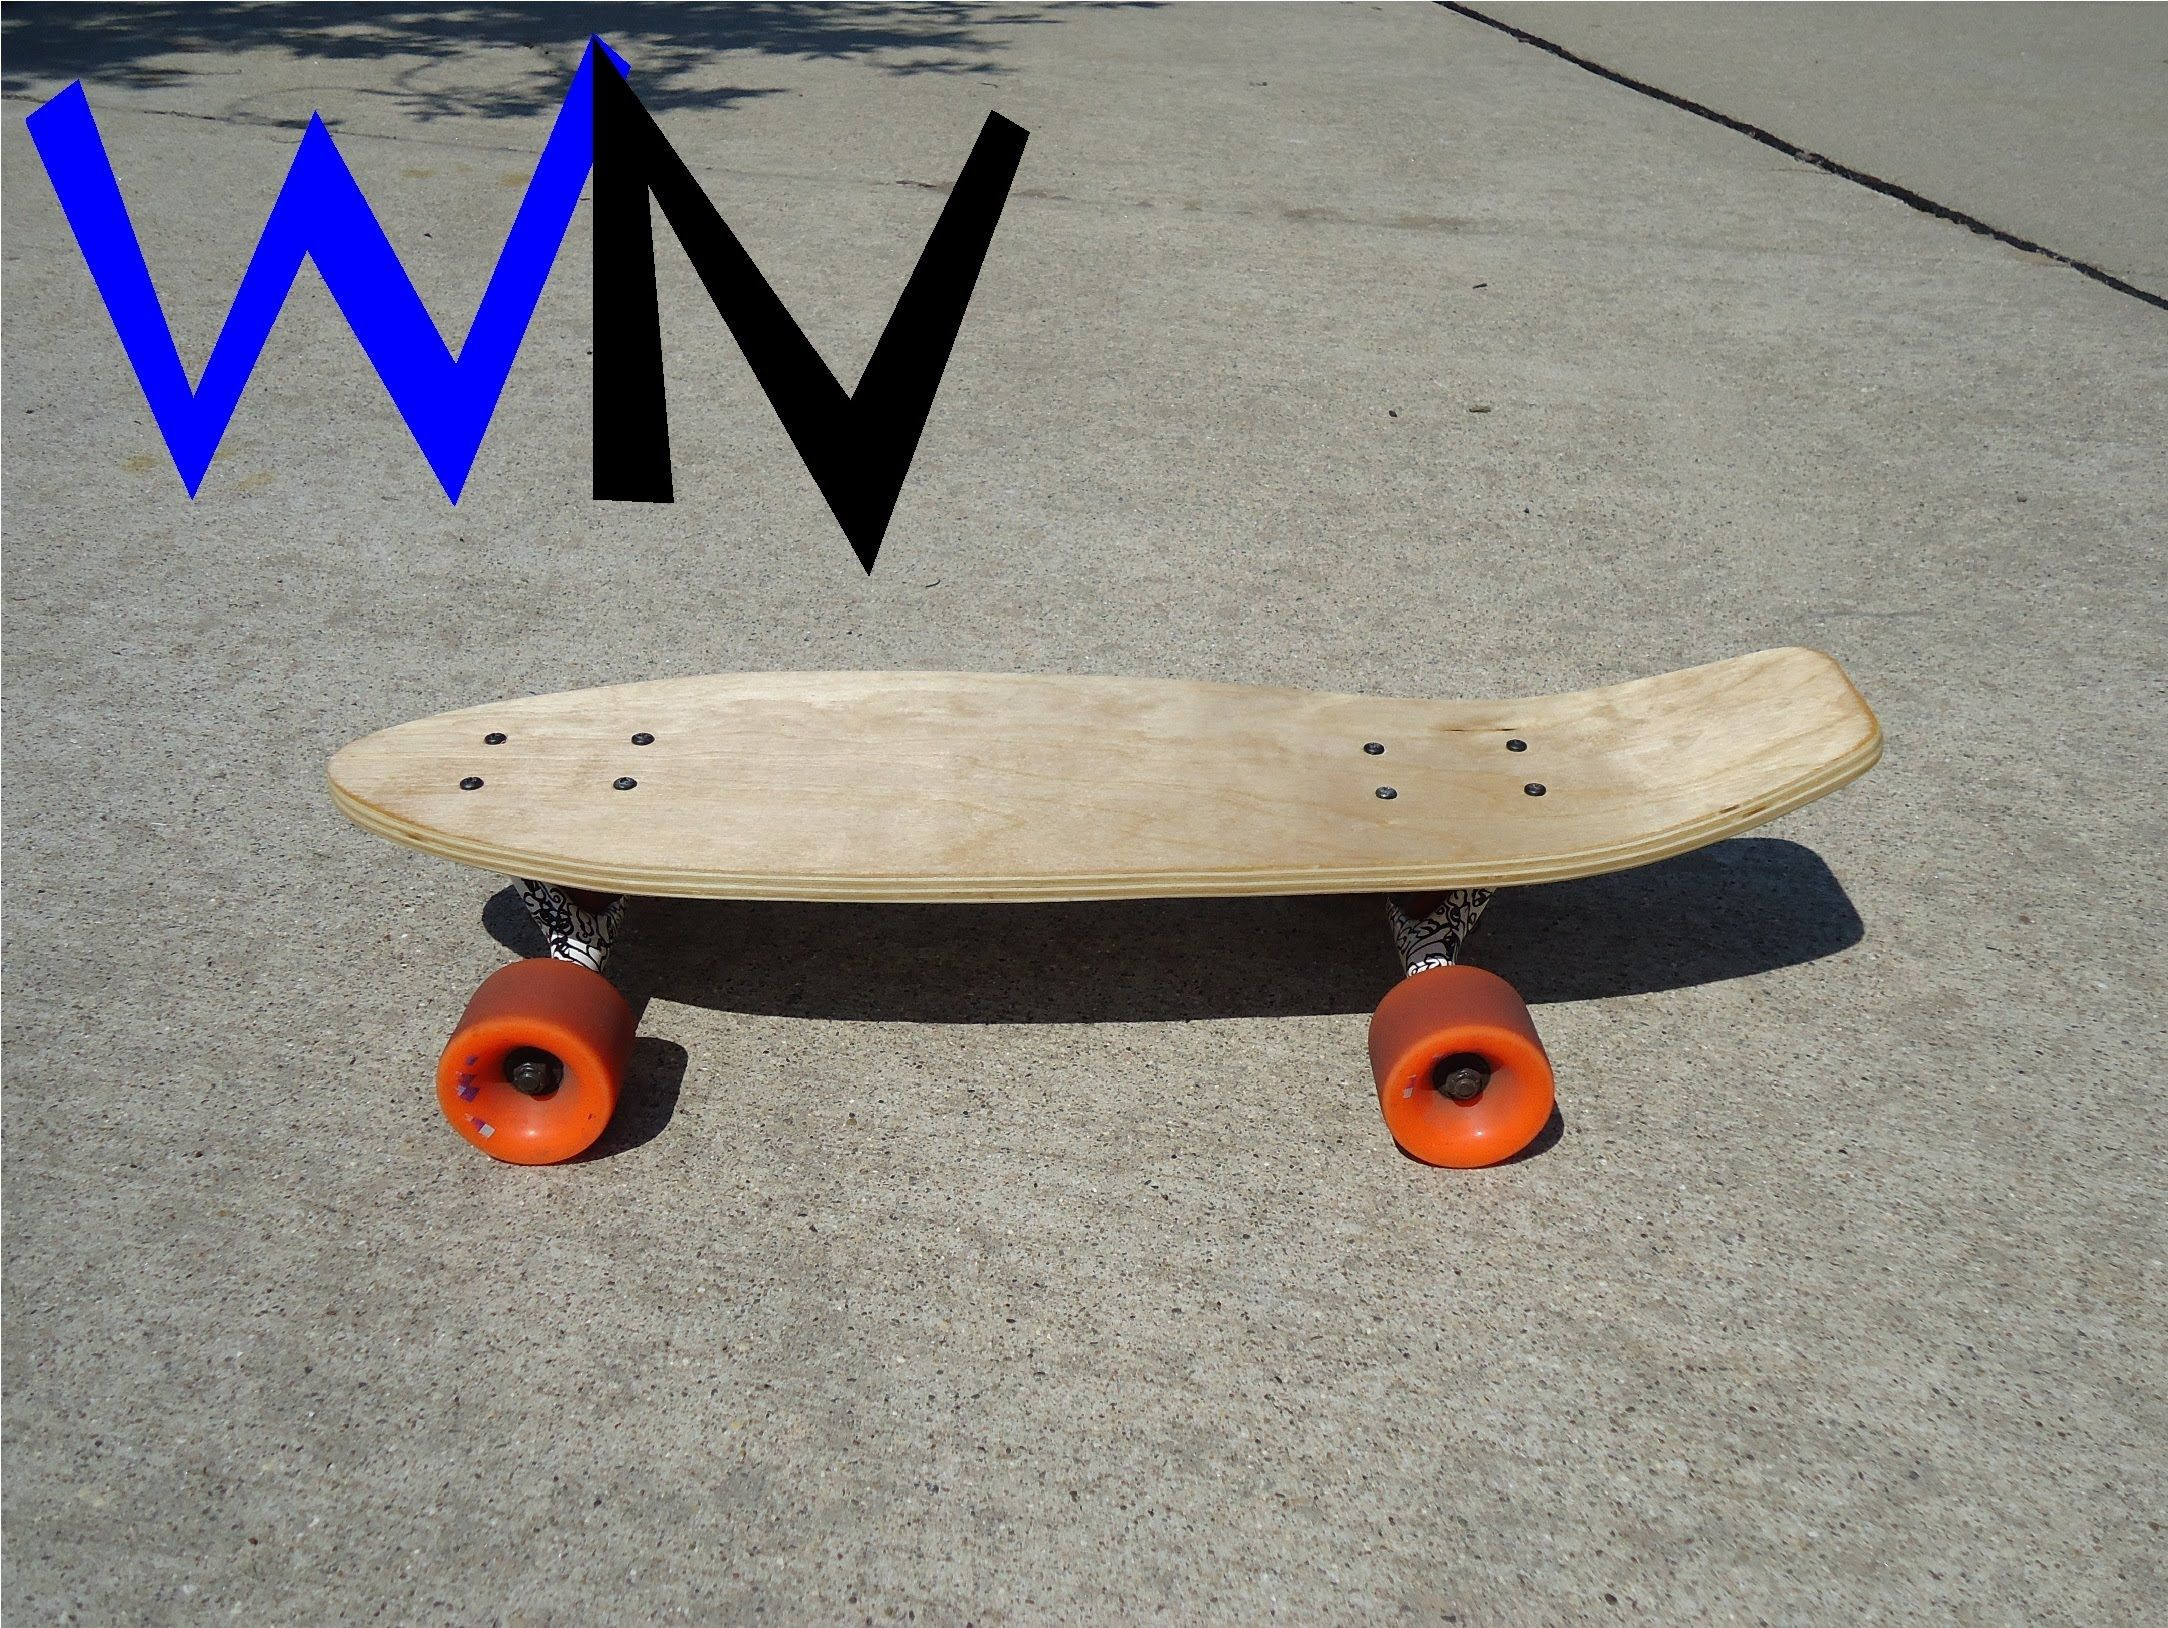 How To Build A Cruiser Board Free Full Size Templates